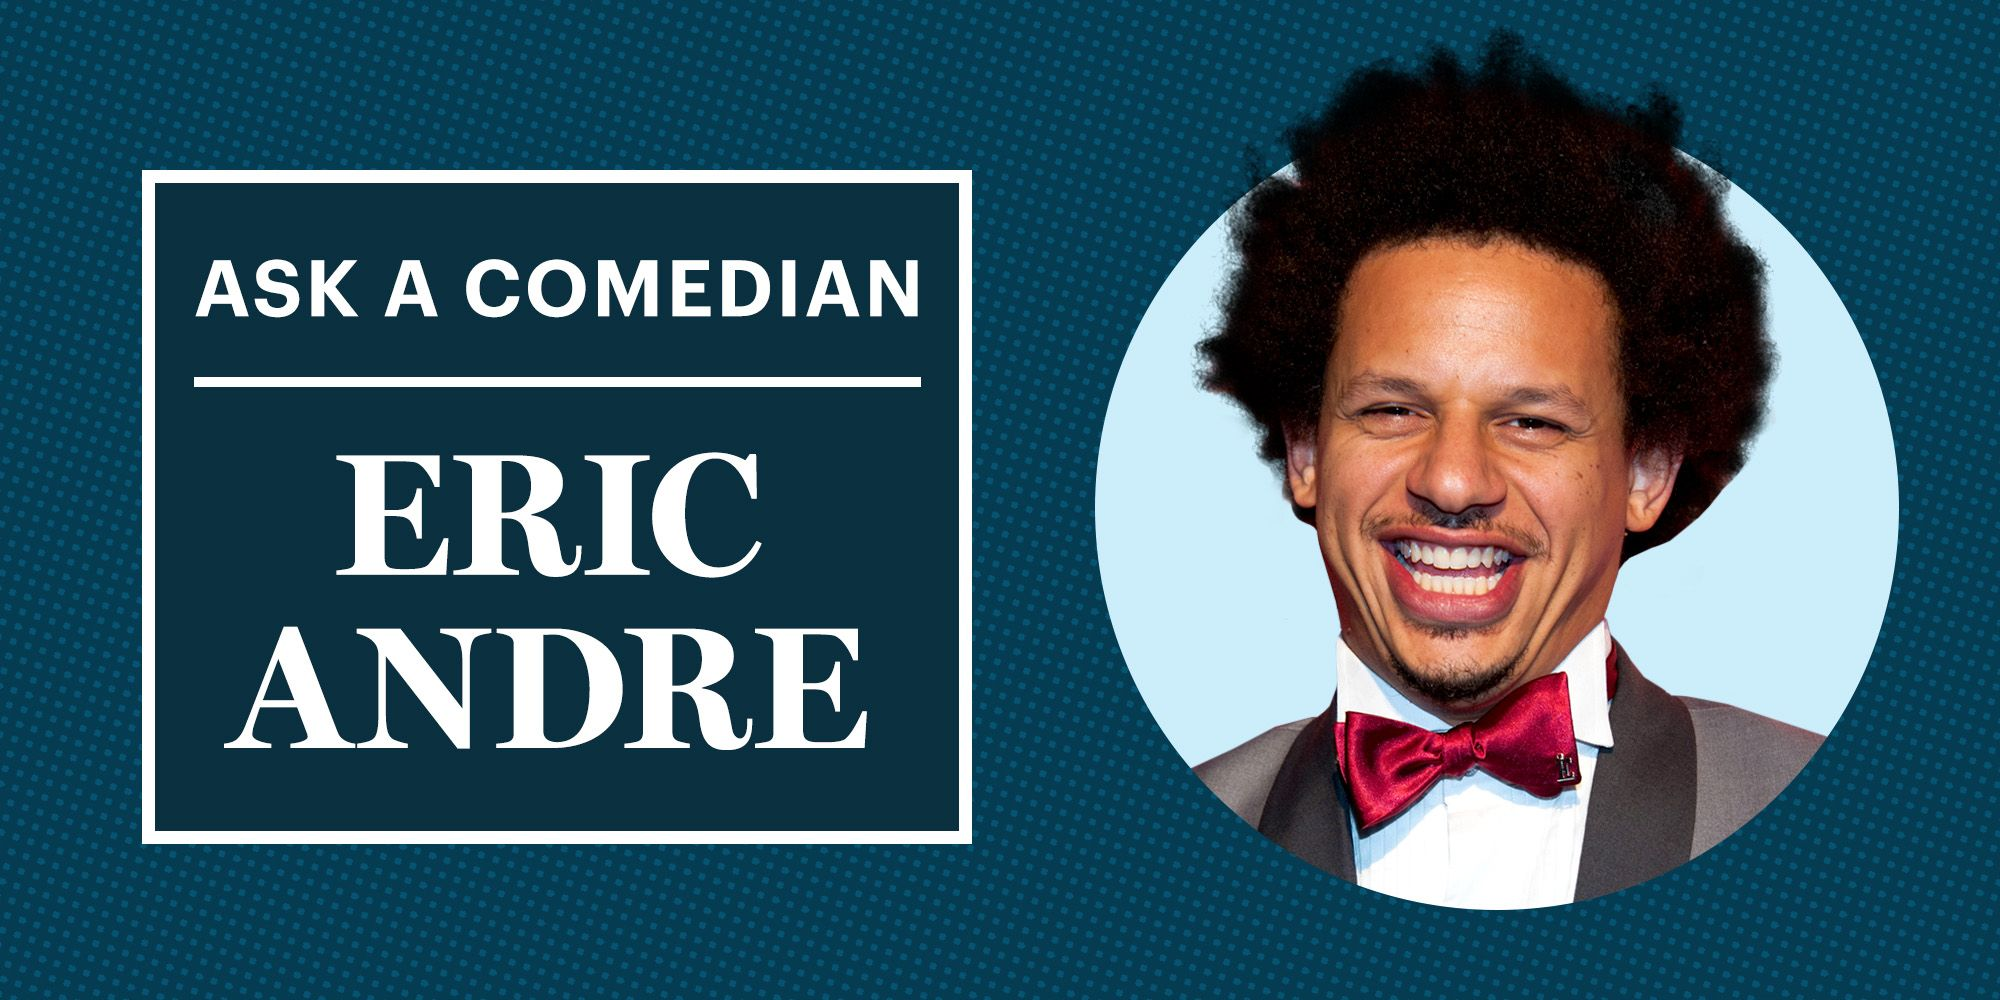 Dating tips from eric andre ranch